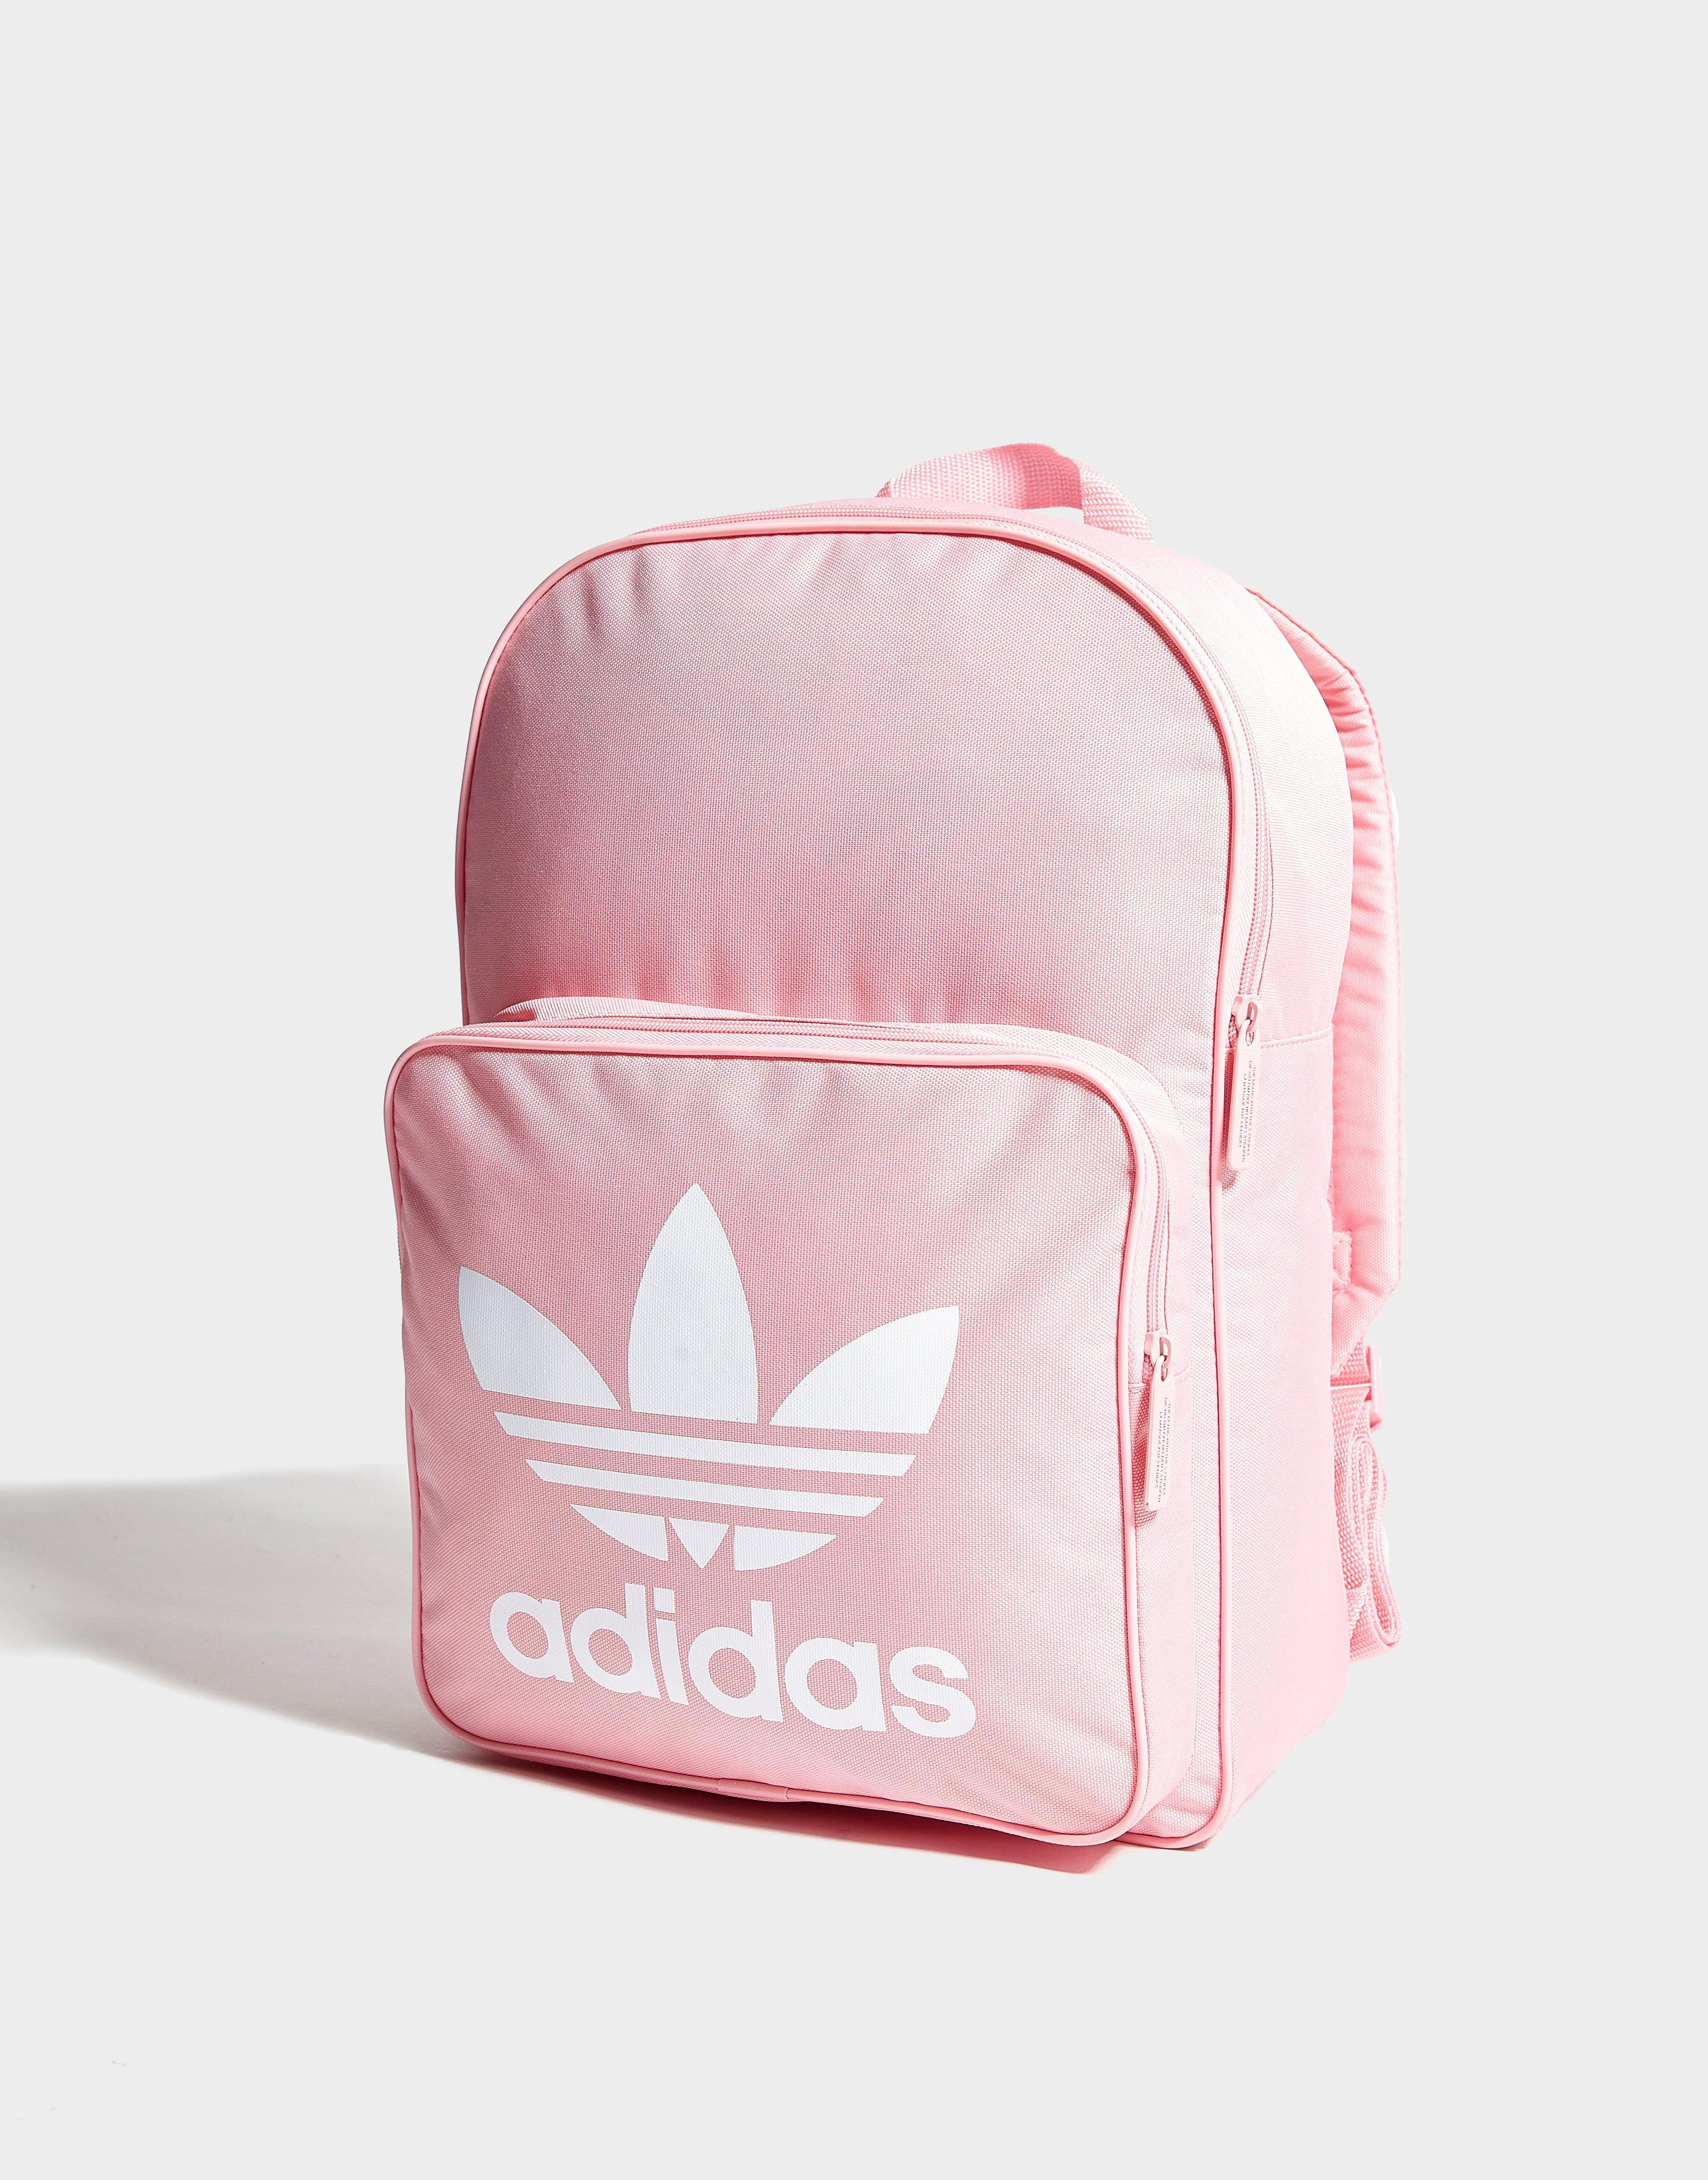 24b1b4ad70c1 Adidas Trefoil Backpack Light Pink- Fenix Toulouse Handball